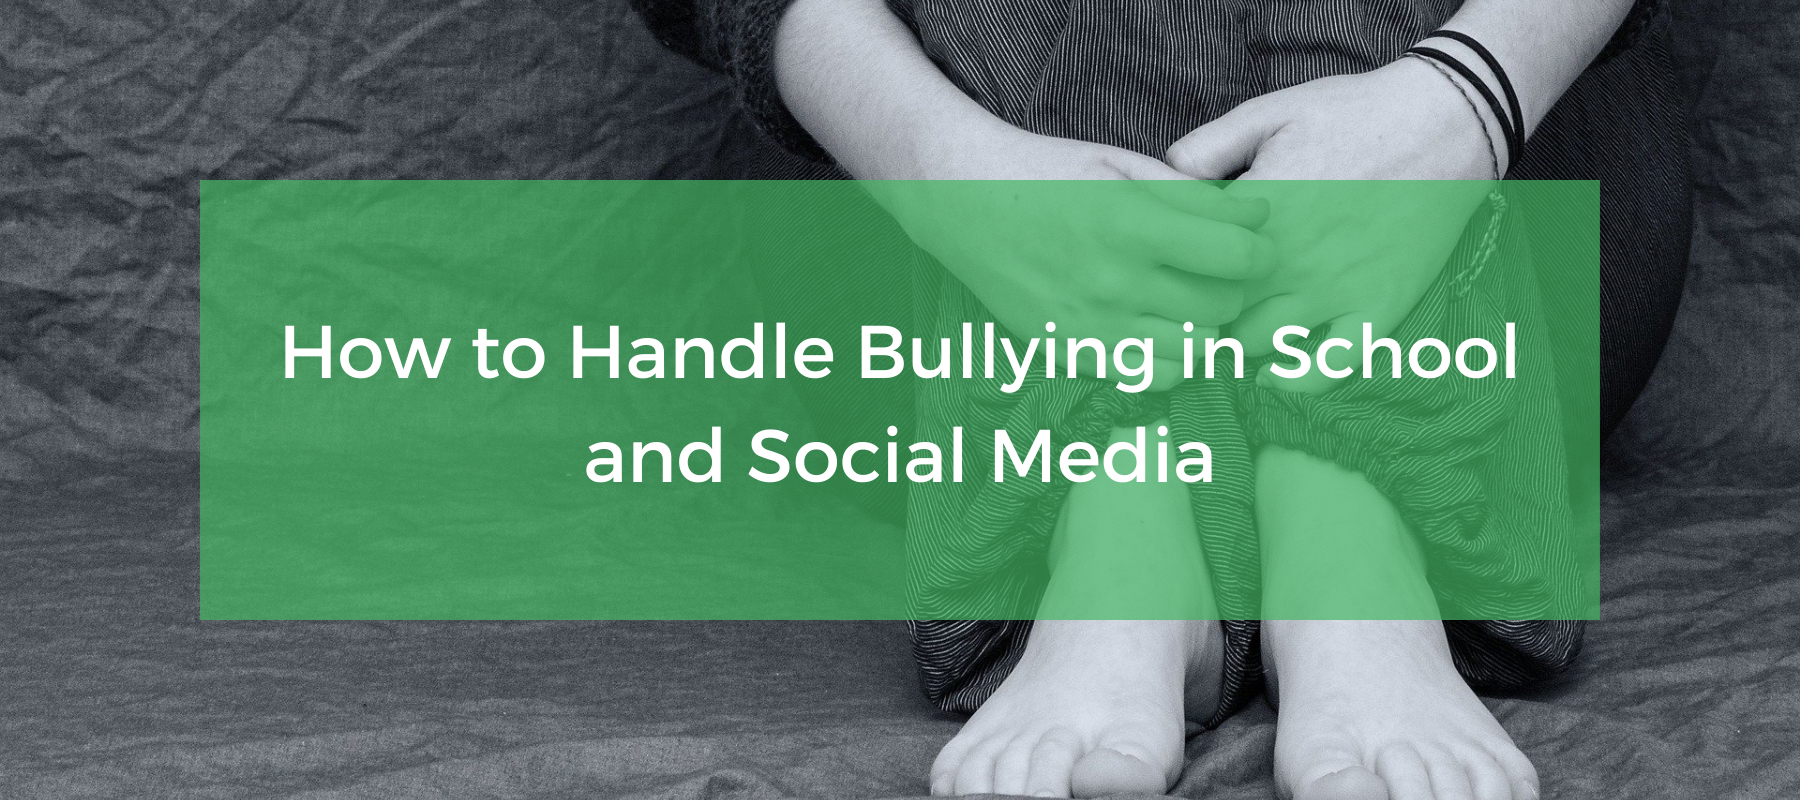 how to handle bullying in school and social media featured.